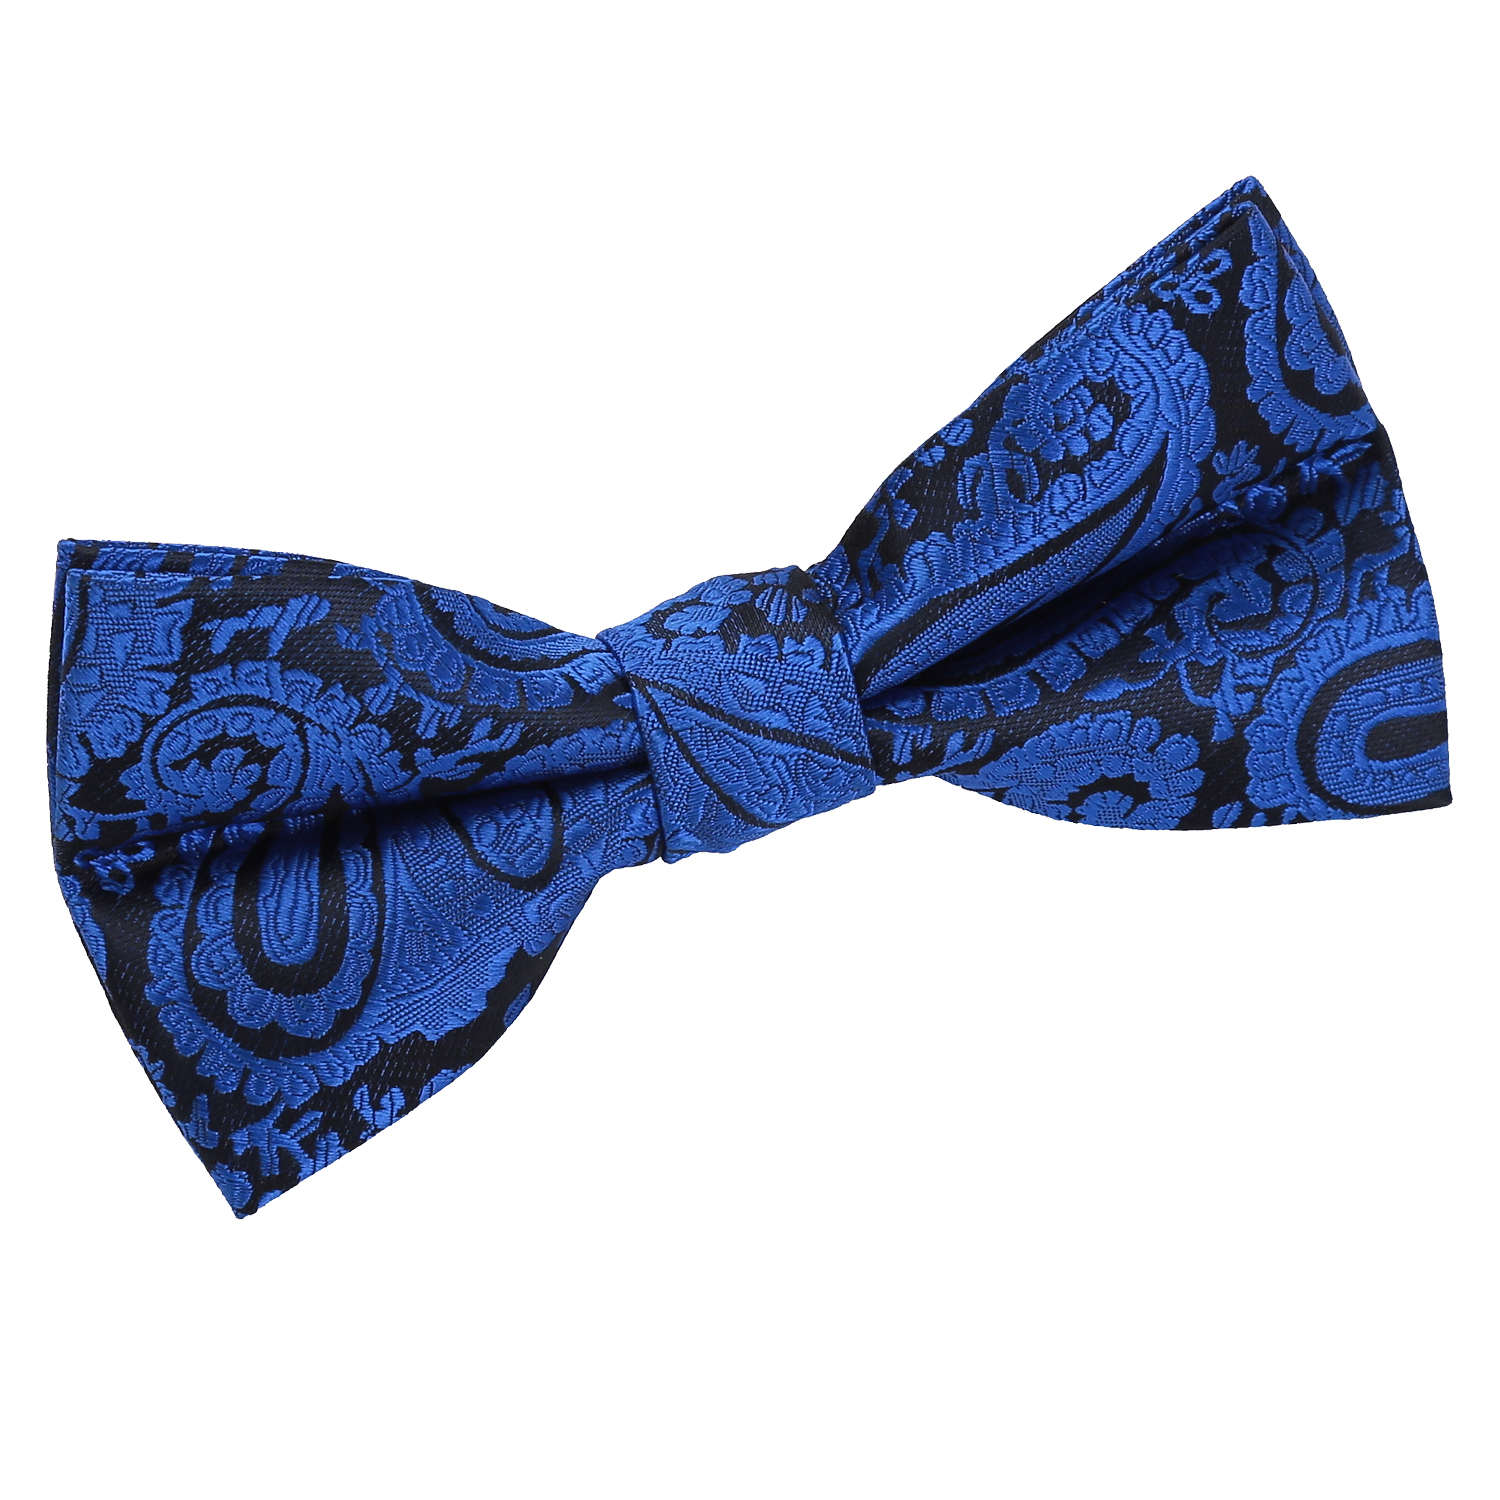 Enjoy free shipping and easy returns every day at Kohl's. Find great deals on Mens Blue Bow Tie Ties at Kohl's today!